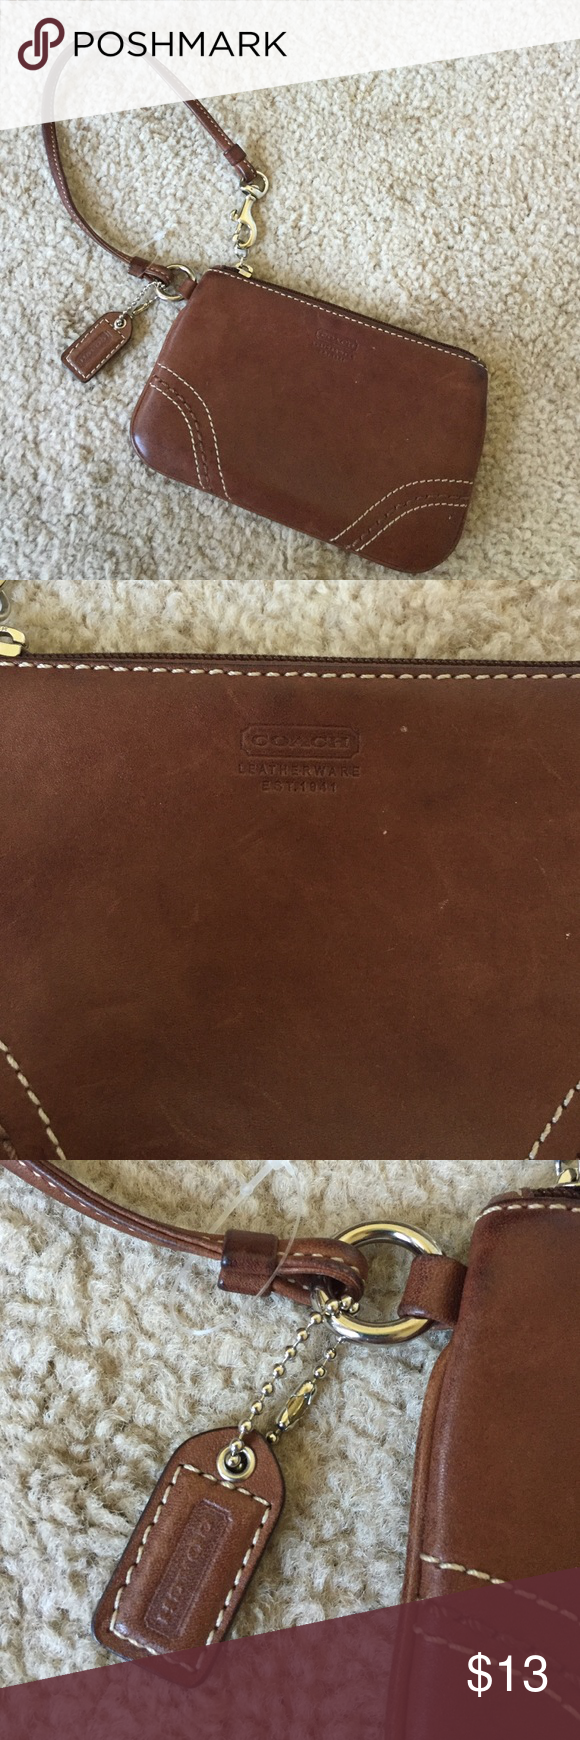 Coach chocolate brown leather wristlet Some scratches here and there. Great overall condition! No interior stains Coach Bags Clutches & Wristlets